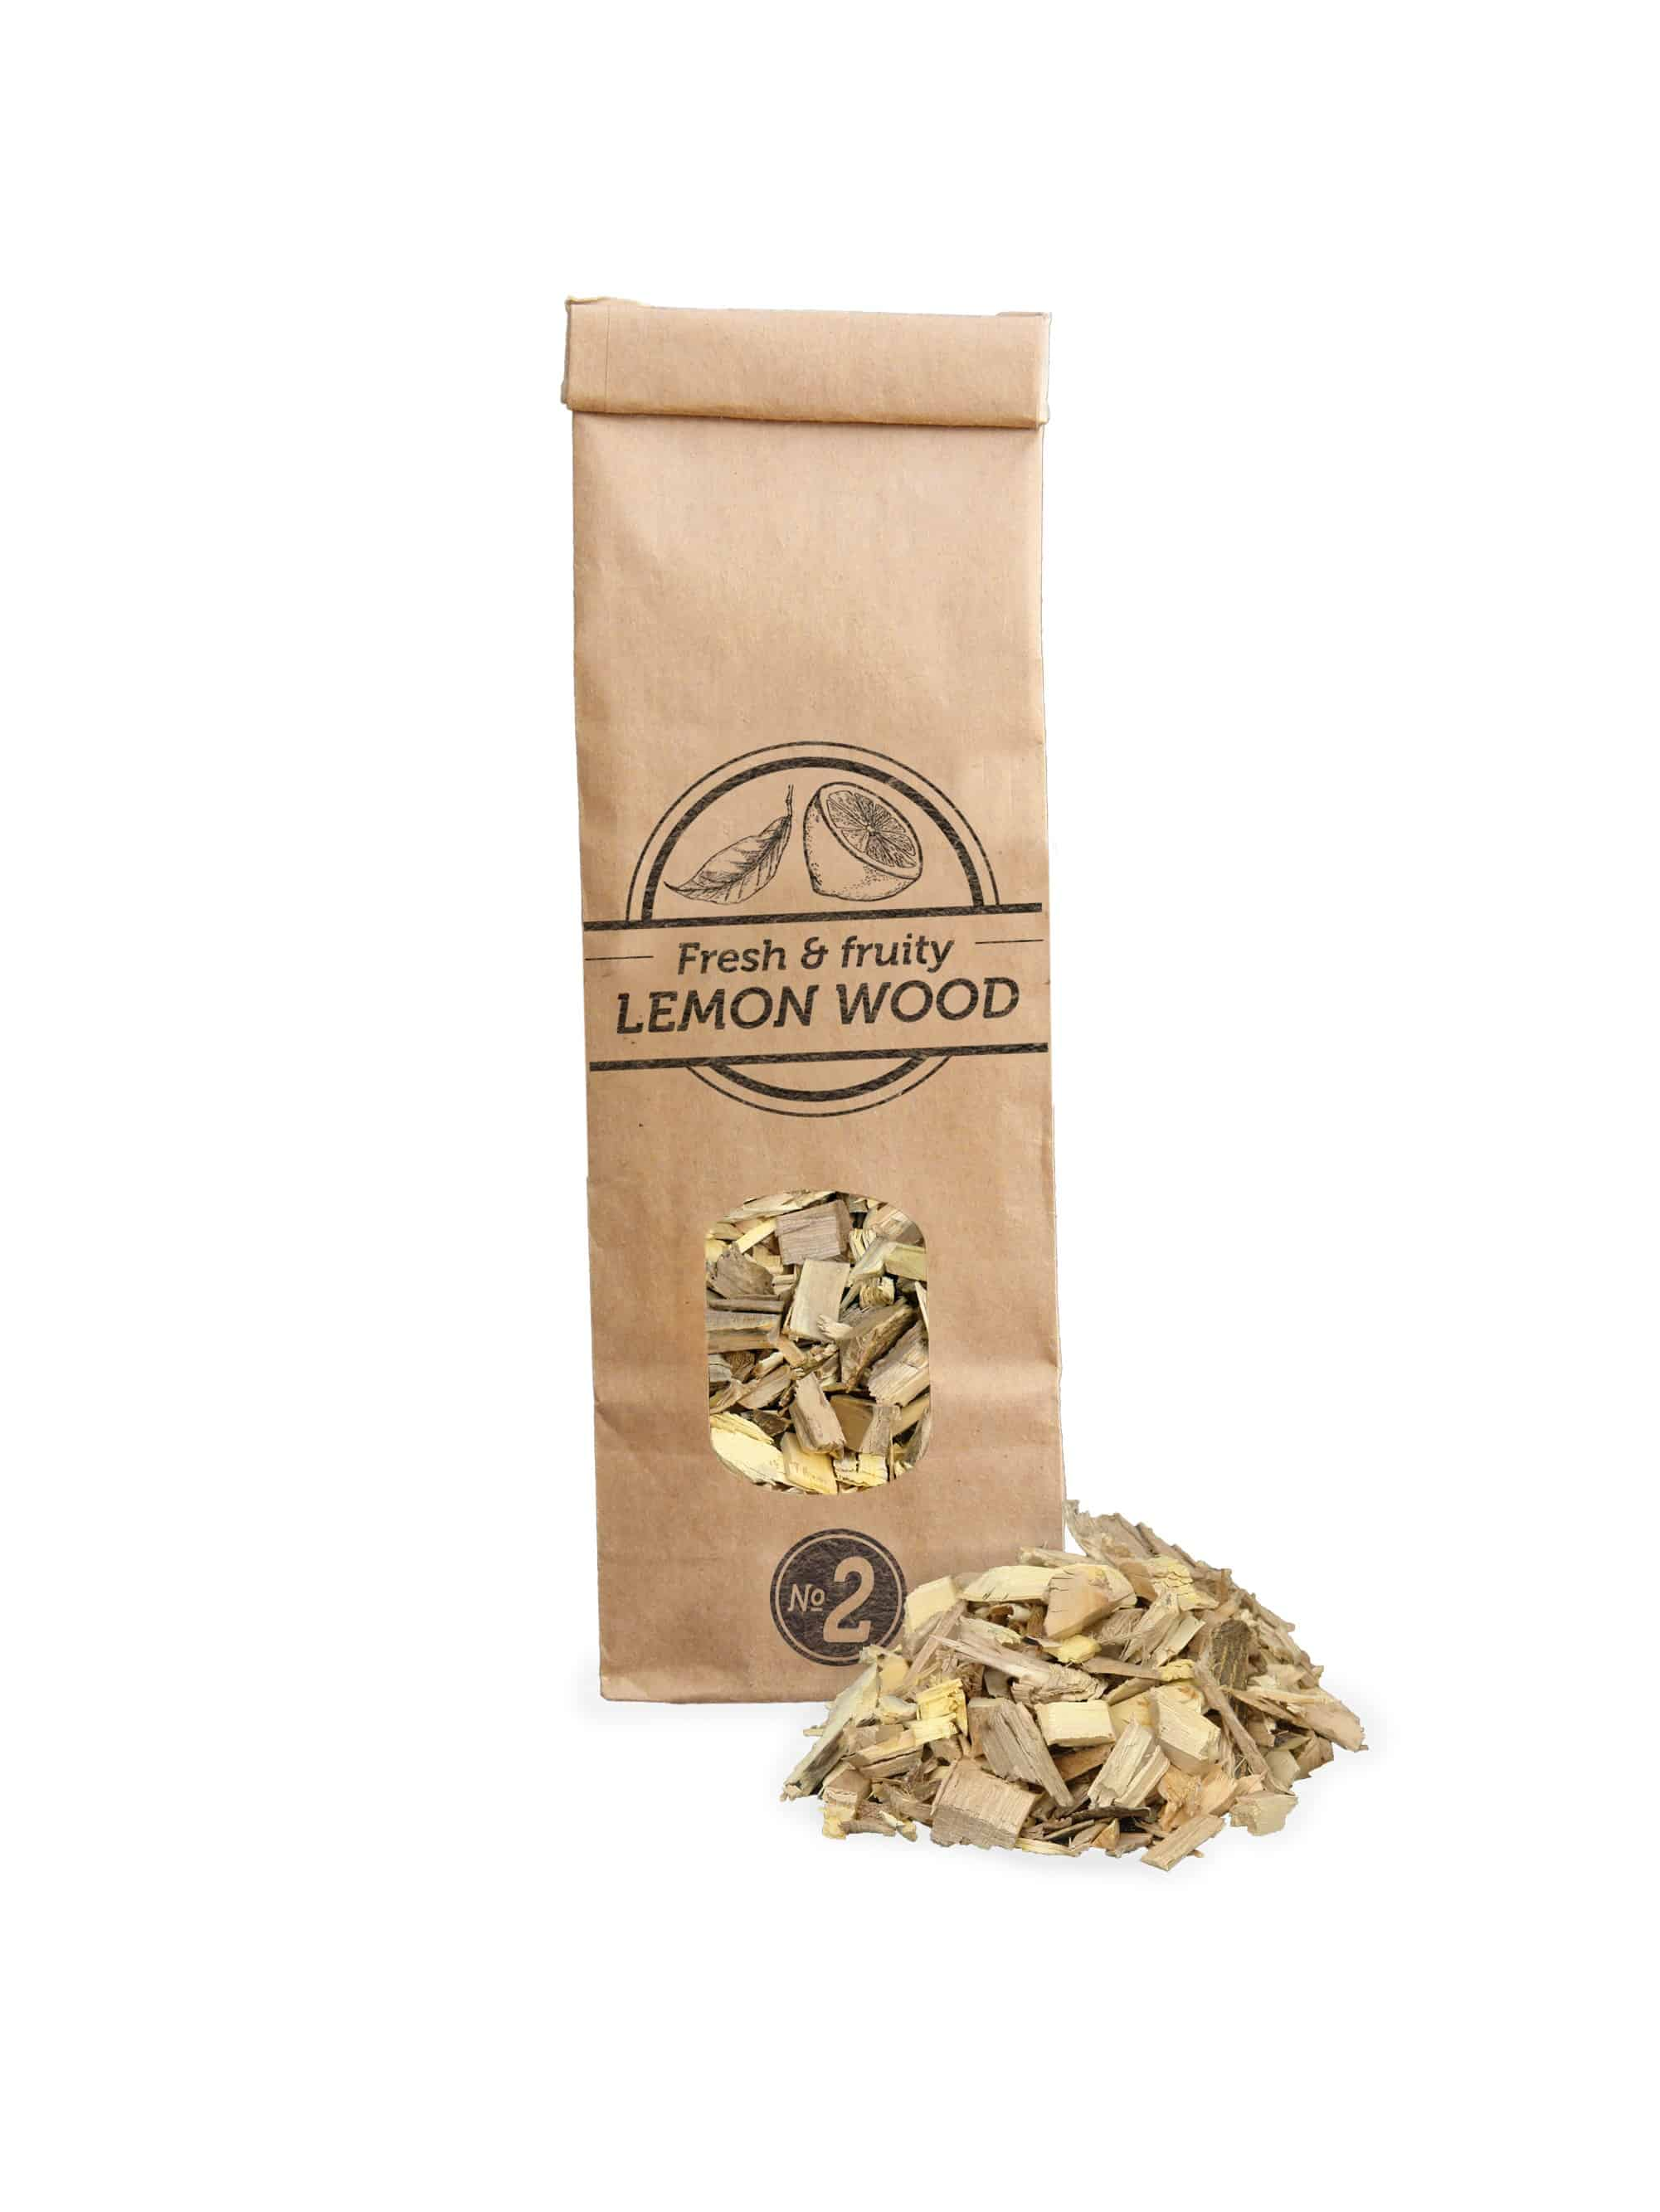 SOW Lemon Wood Smoking Chips Small Pack Nº2